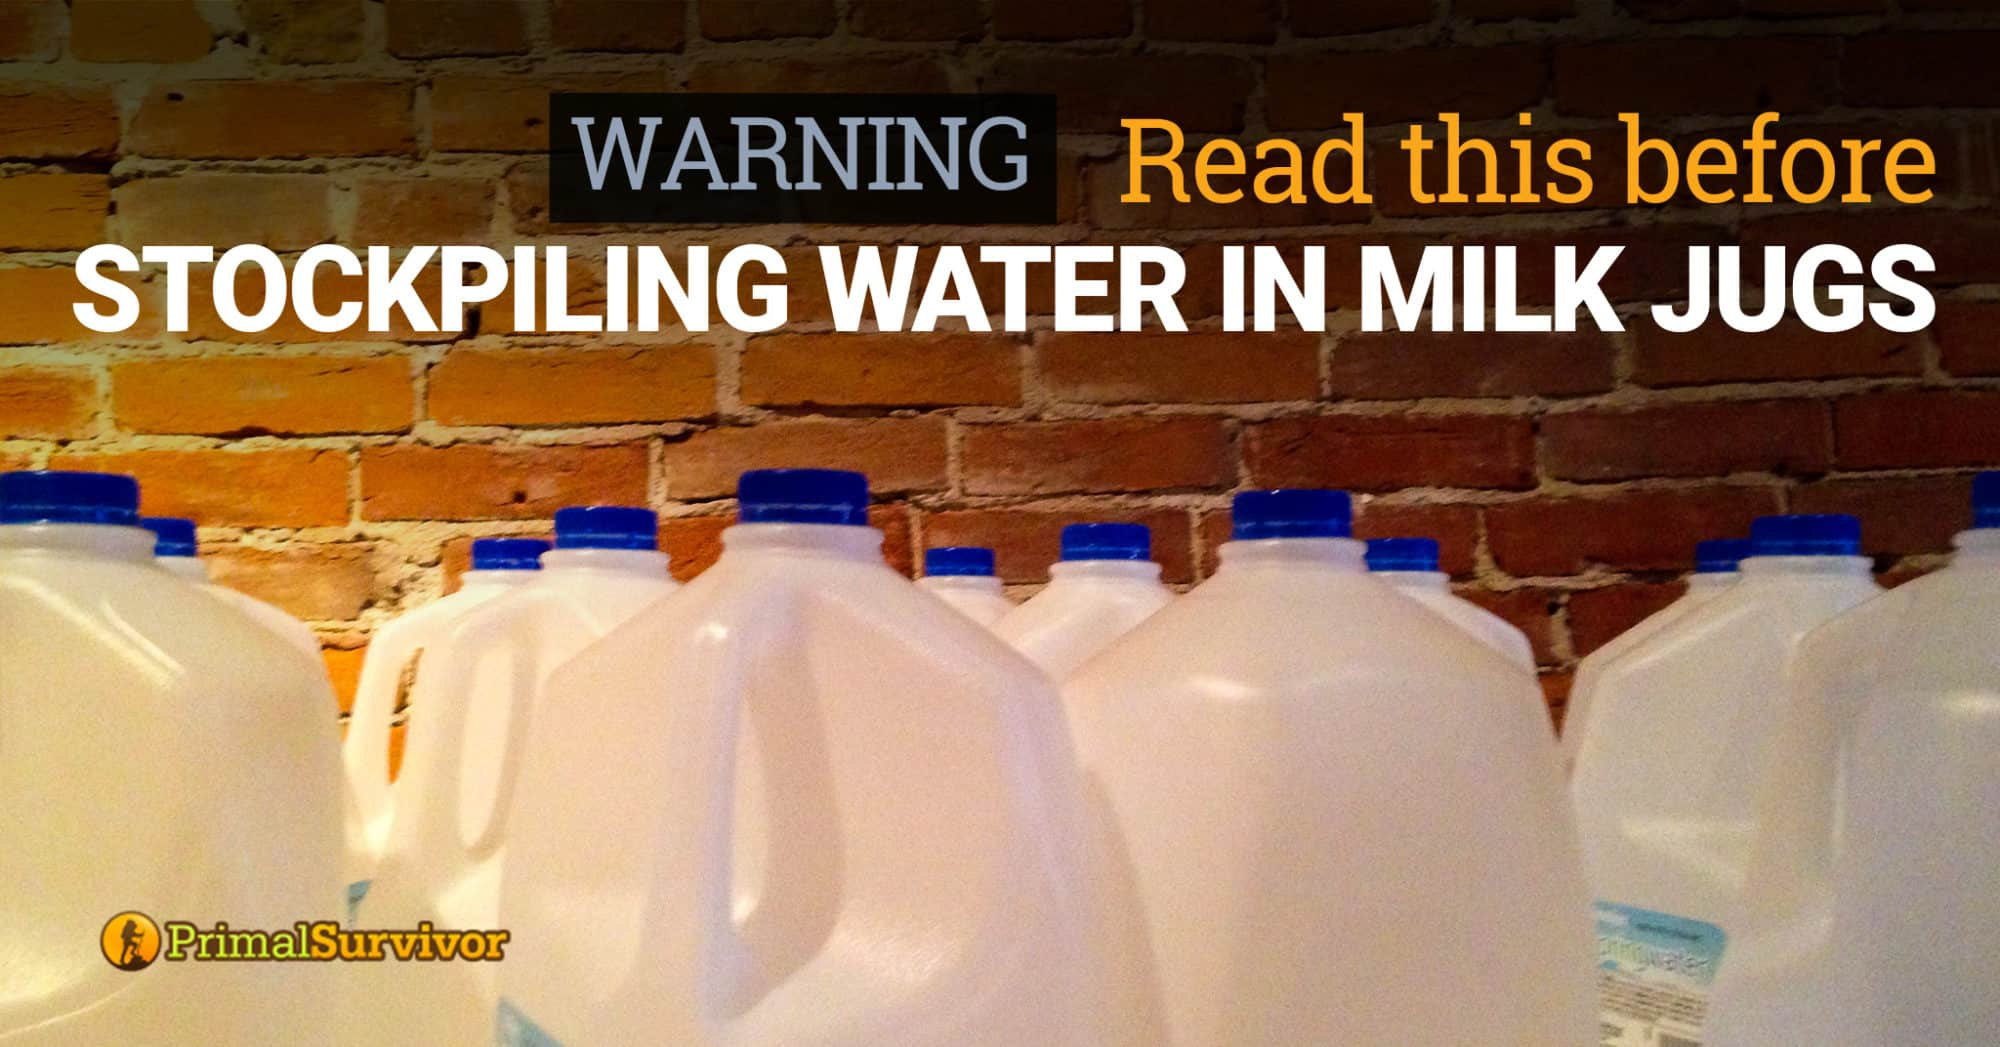 Warning: Read this Before Stockpiling Water in Milk Jugs! post image